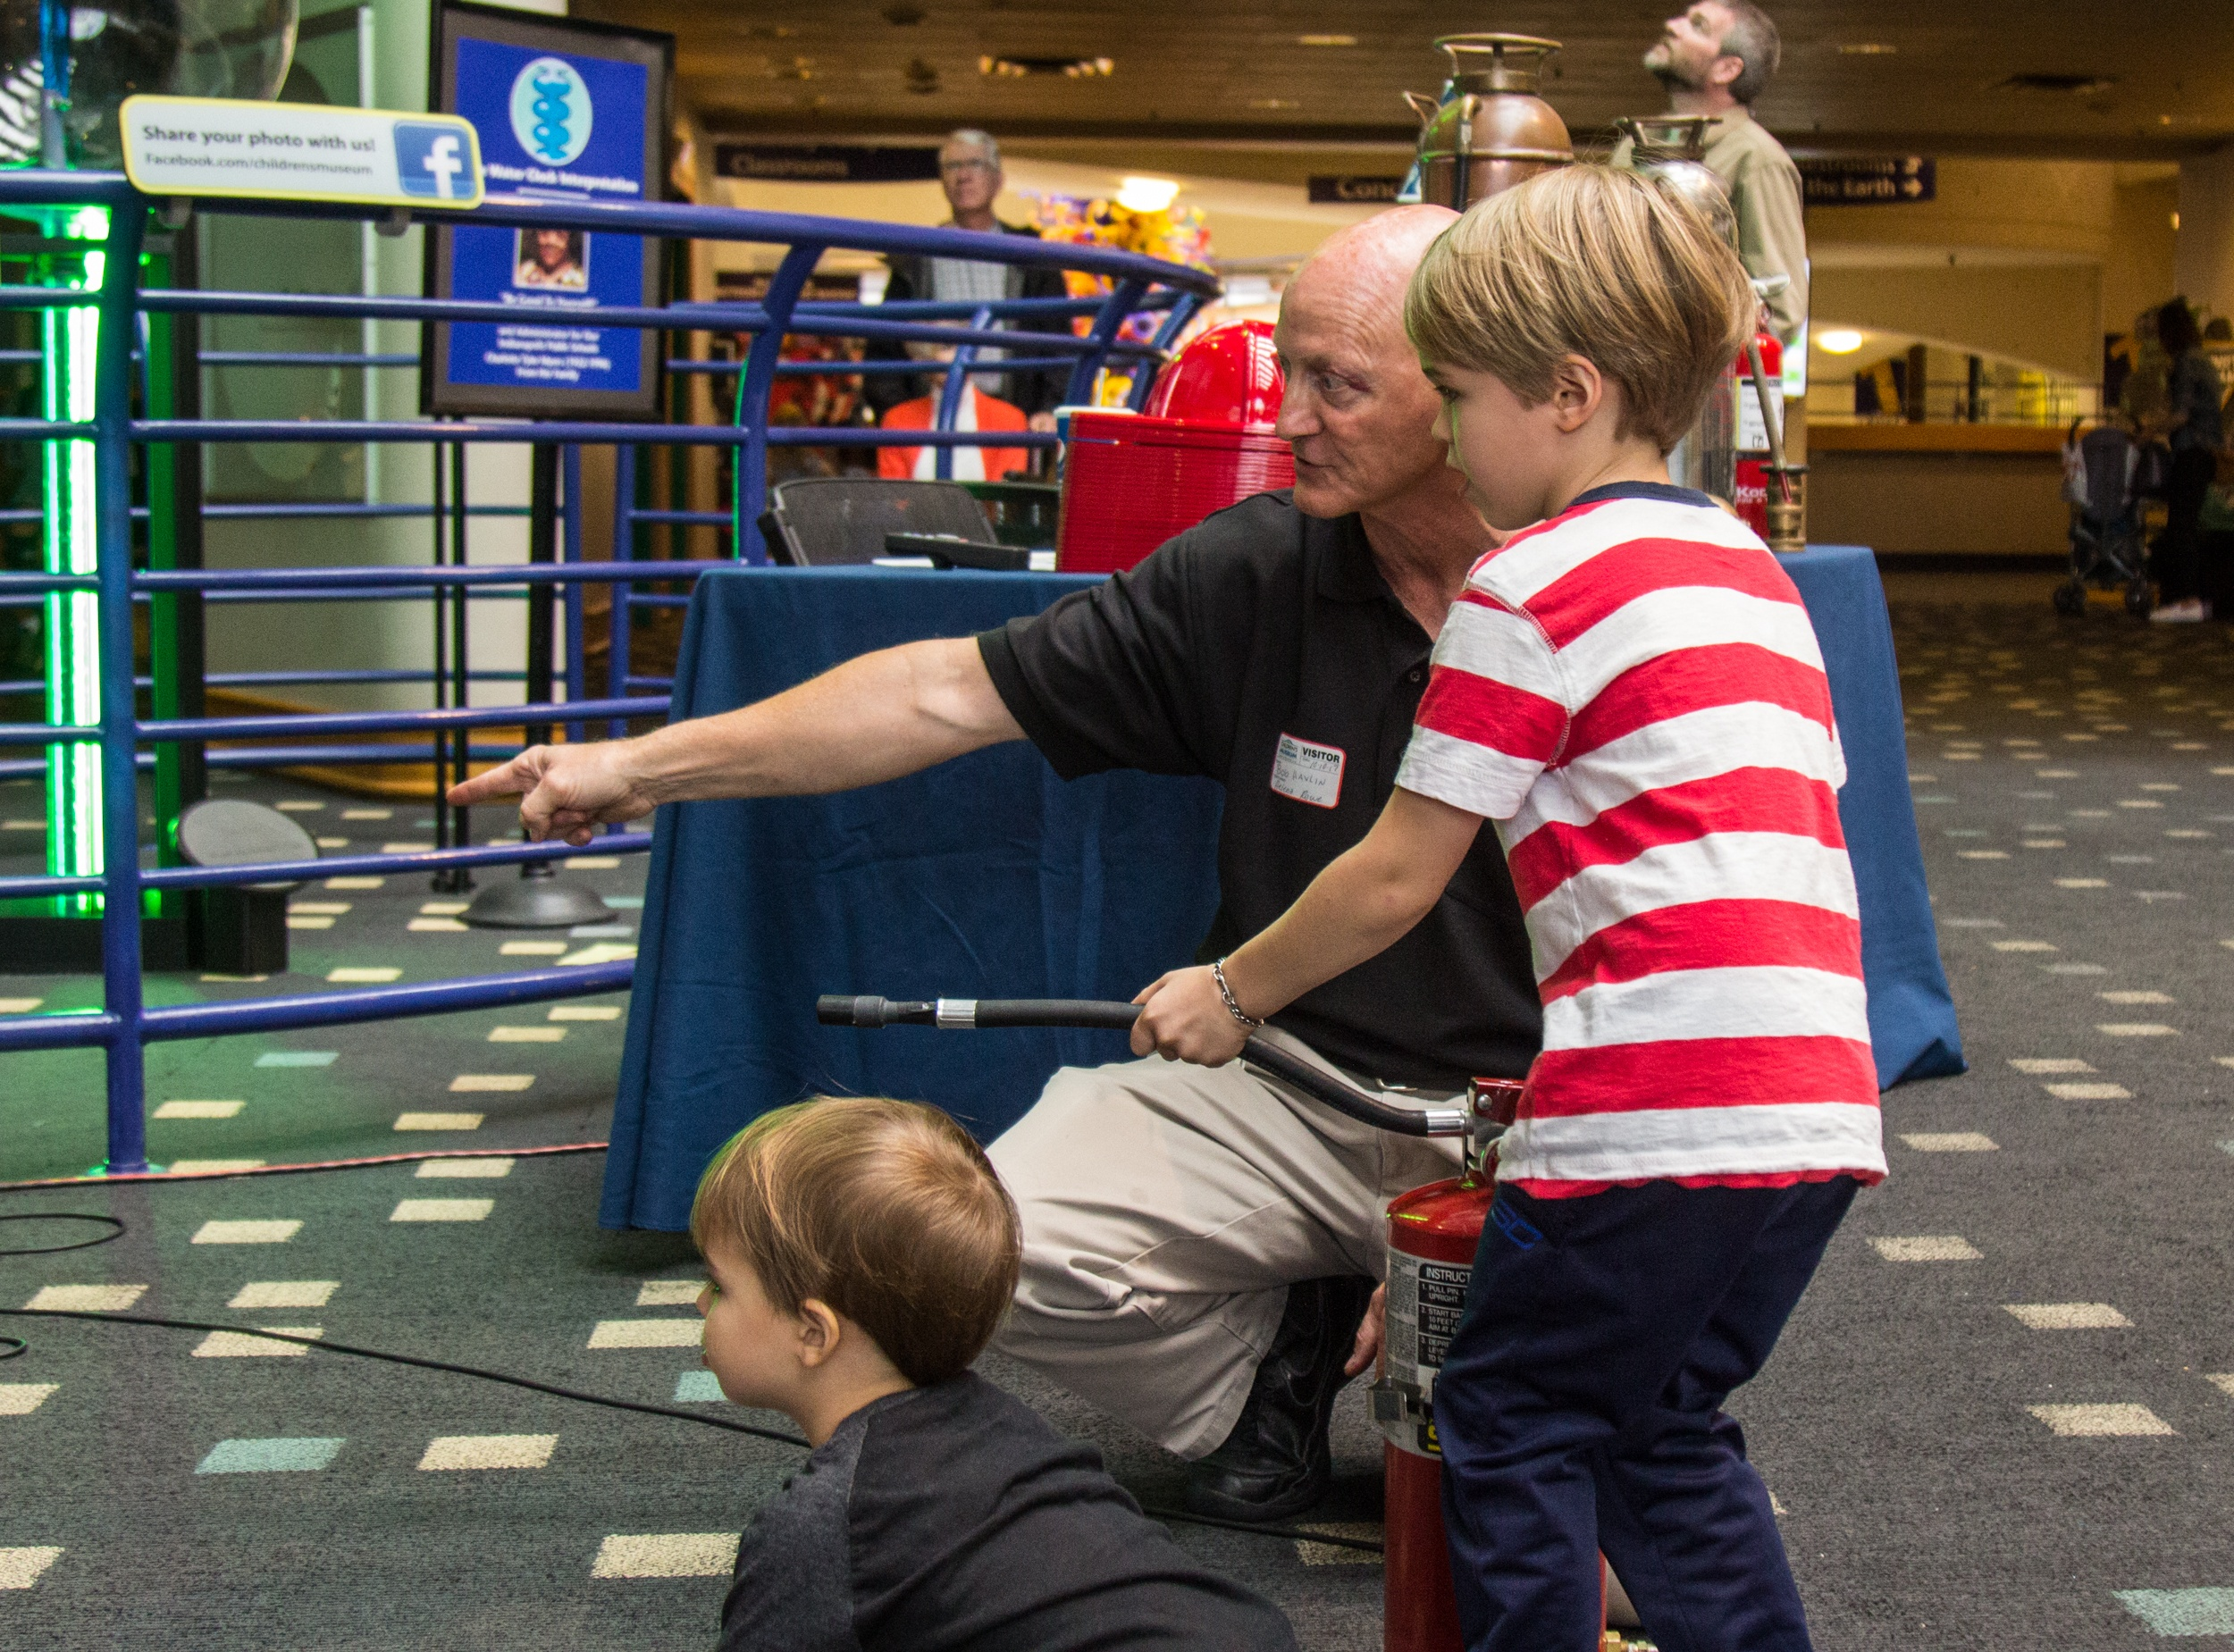 Teaching Fire Safety at the Indianapolis Children's Museum